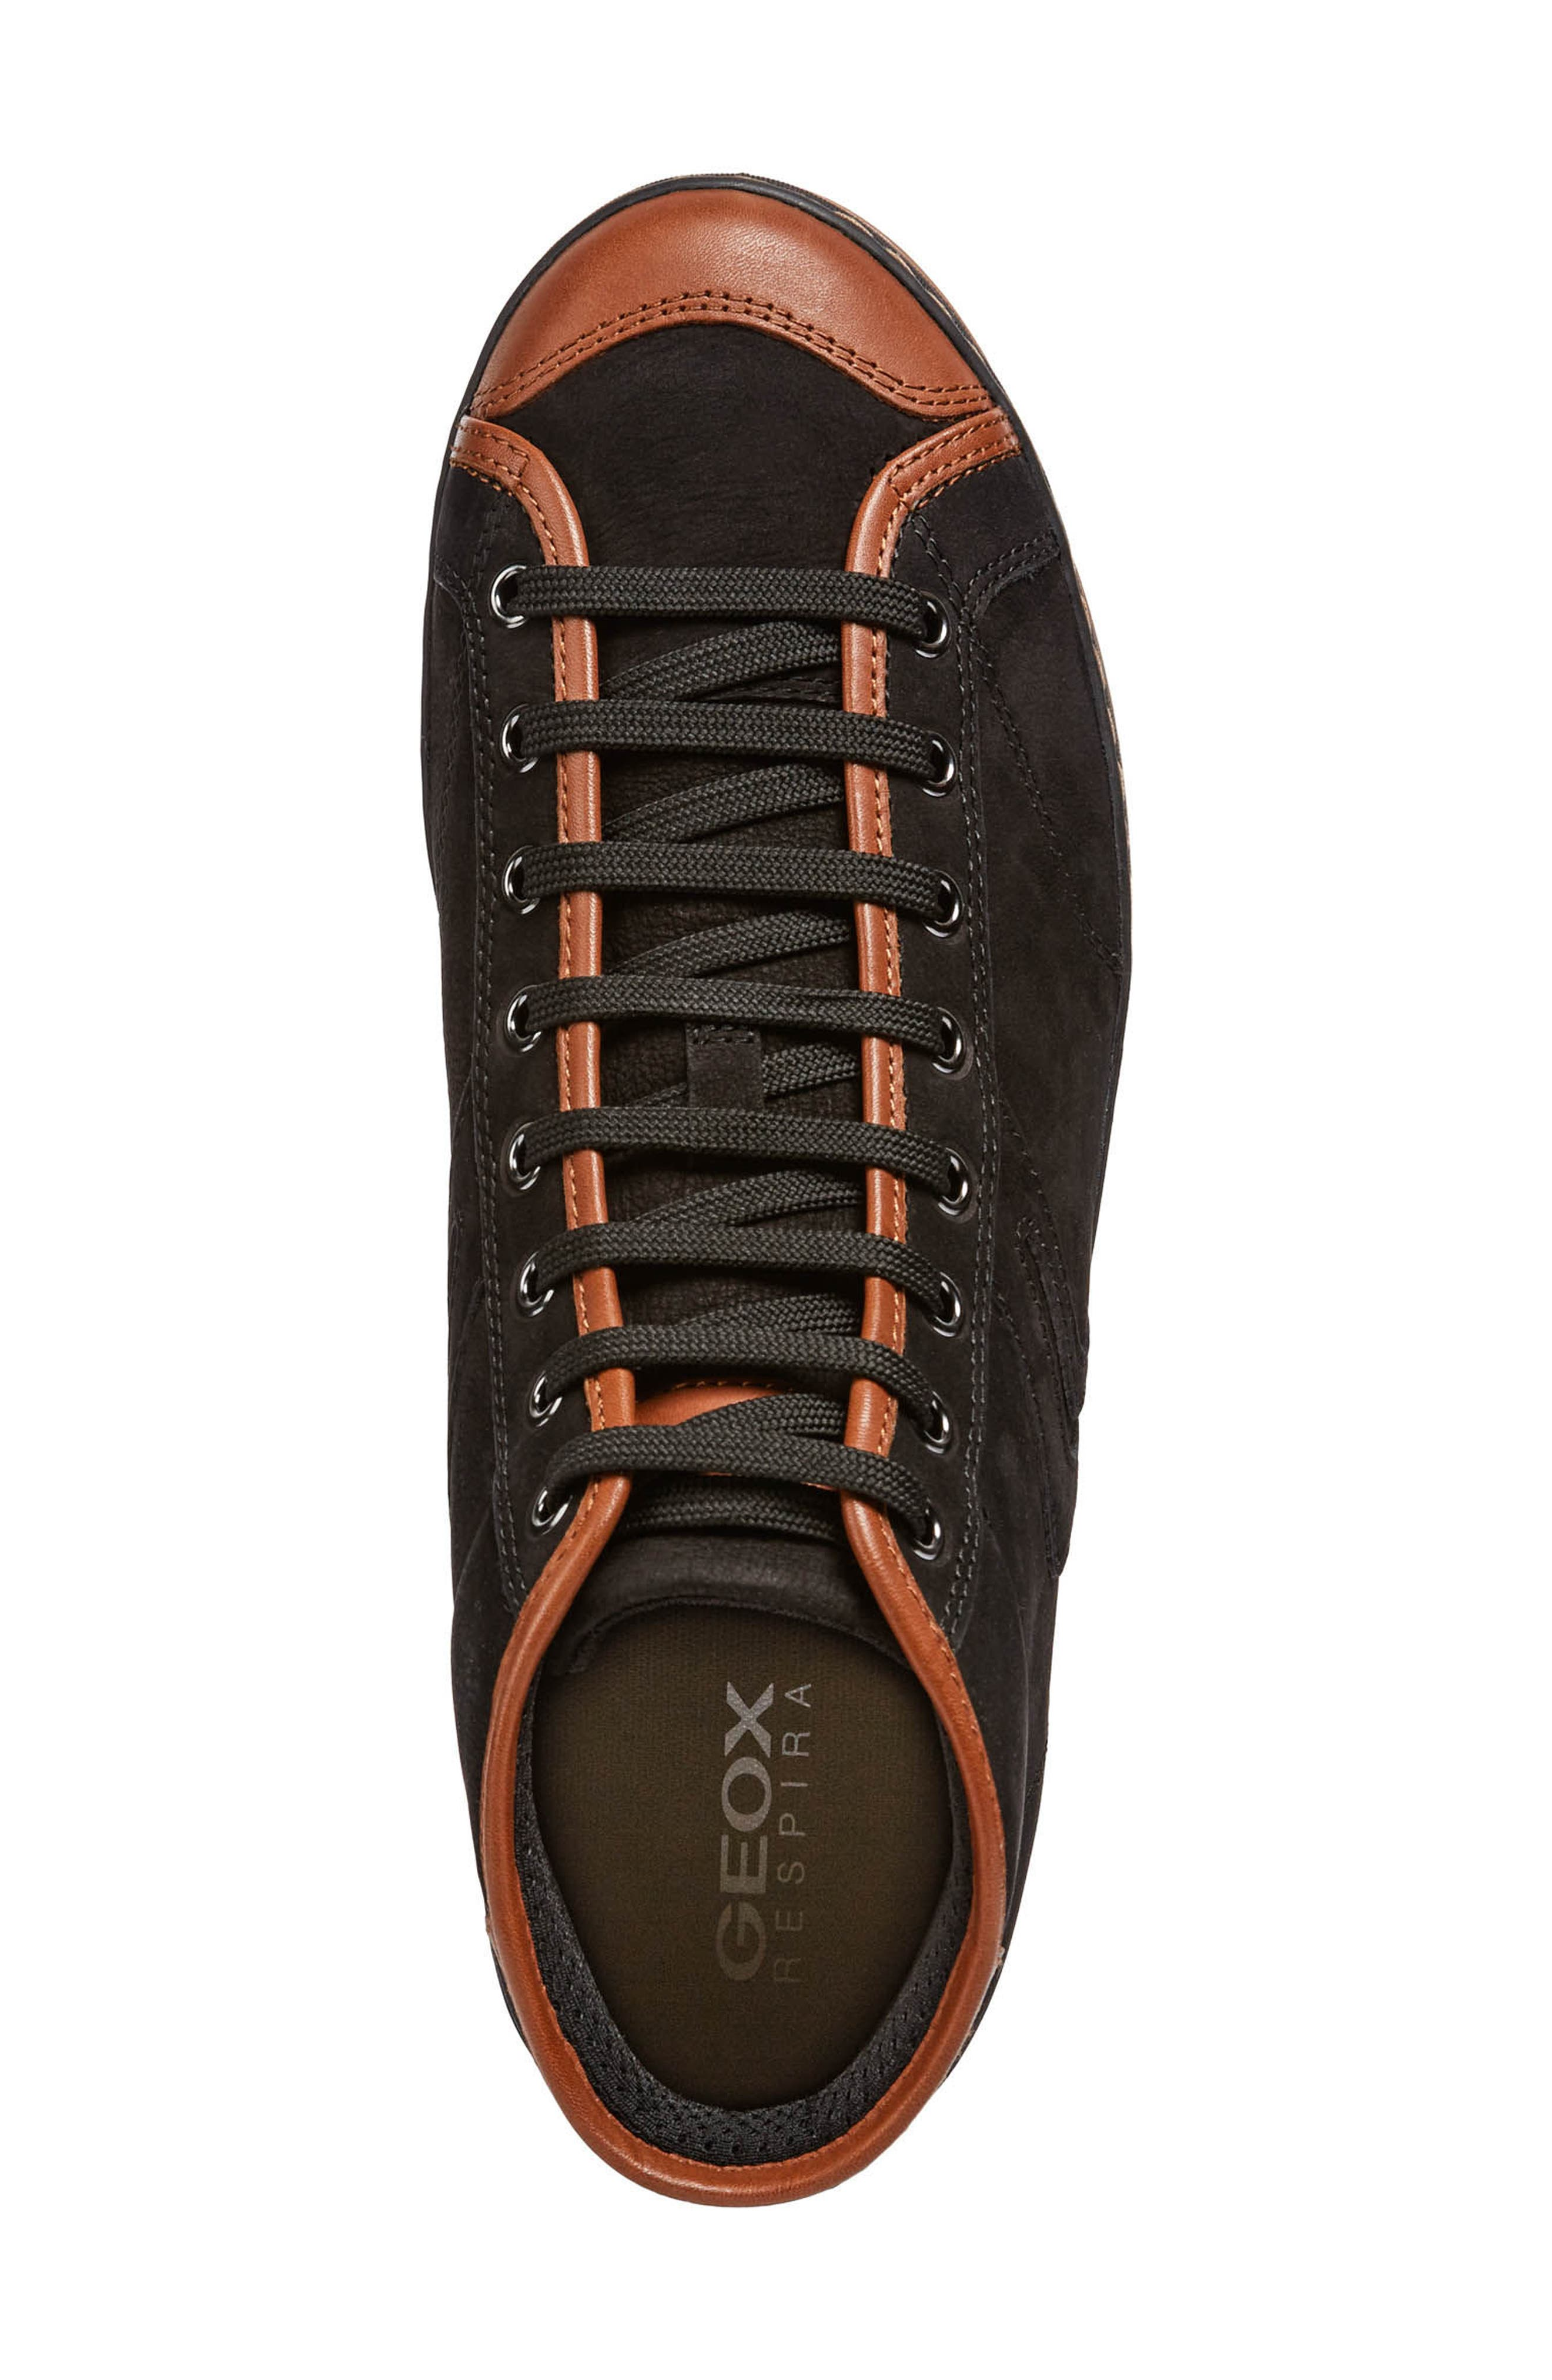 Ariam High Top Sneaker,                             Alternate thumbnail 5, color,                             203